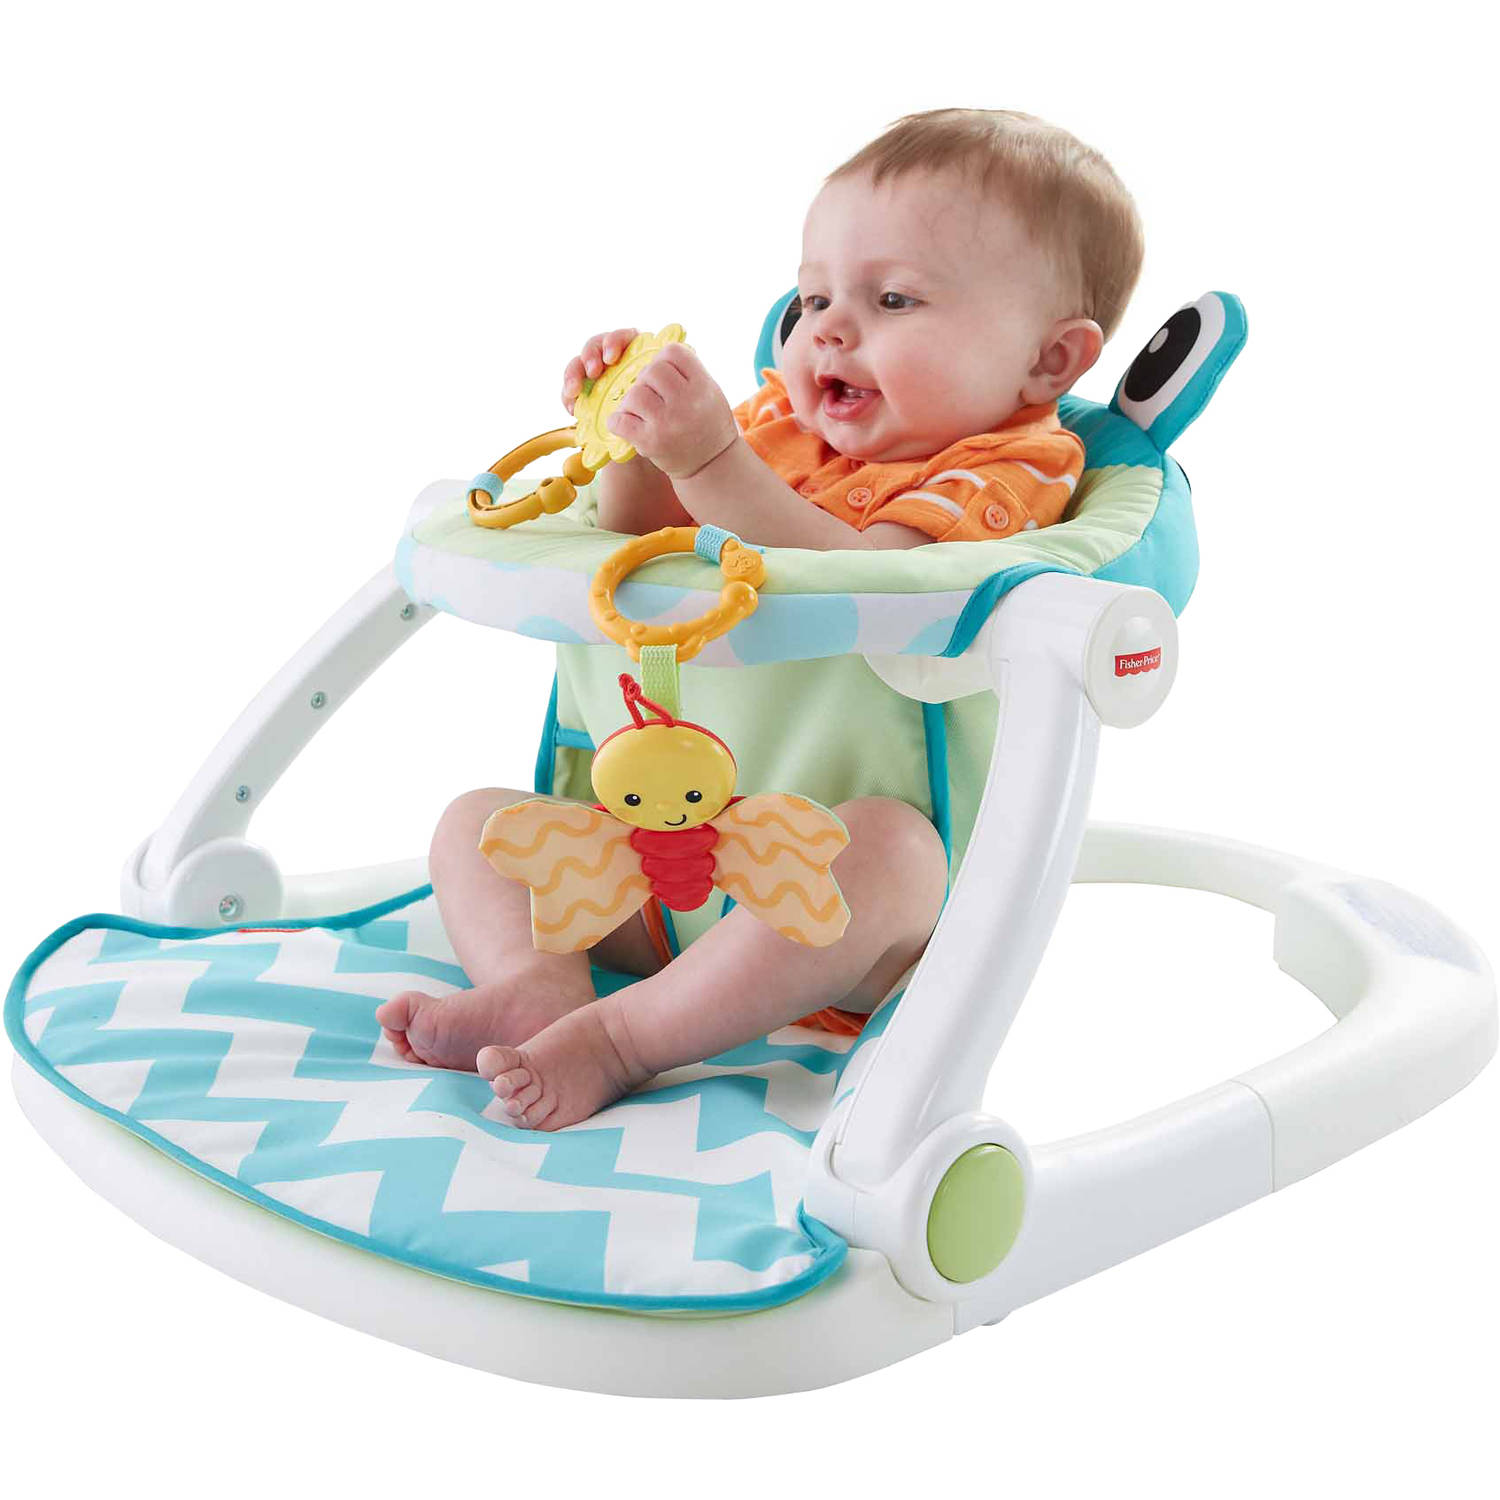 Baby bath chair walmart - Baby Bath Chair Walmart 20